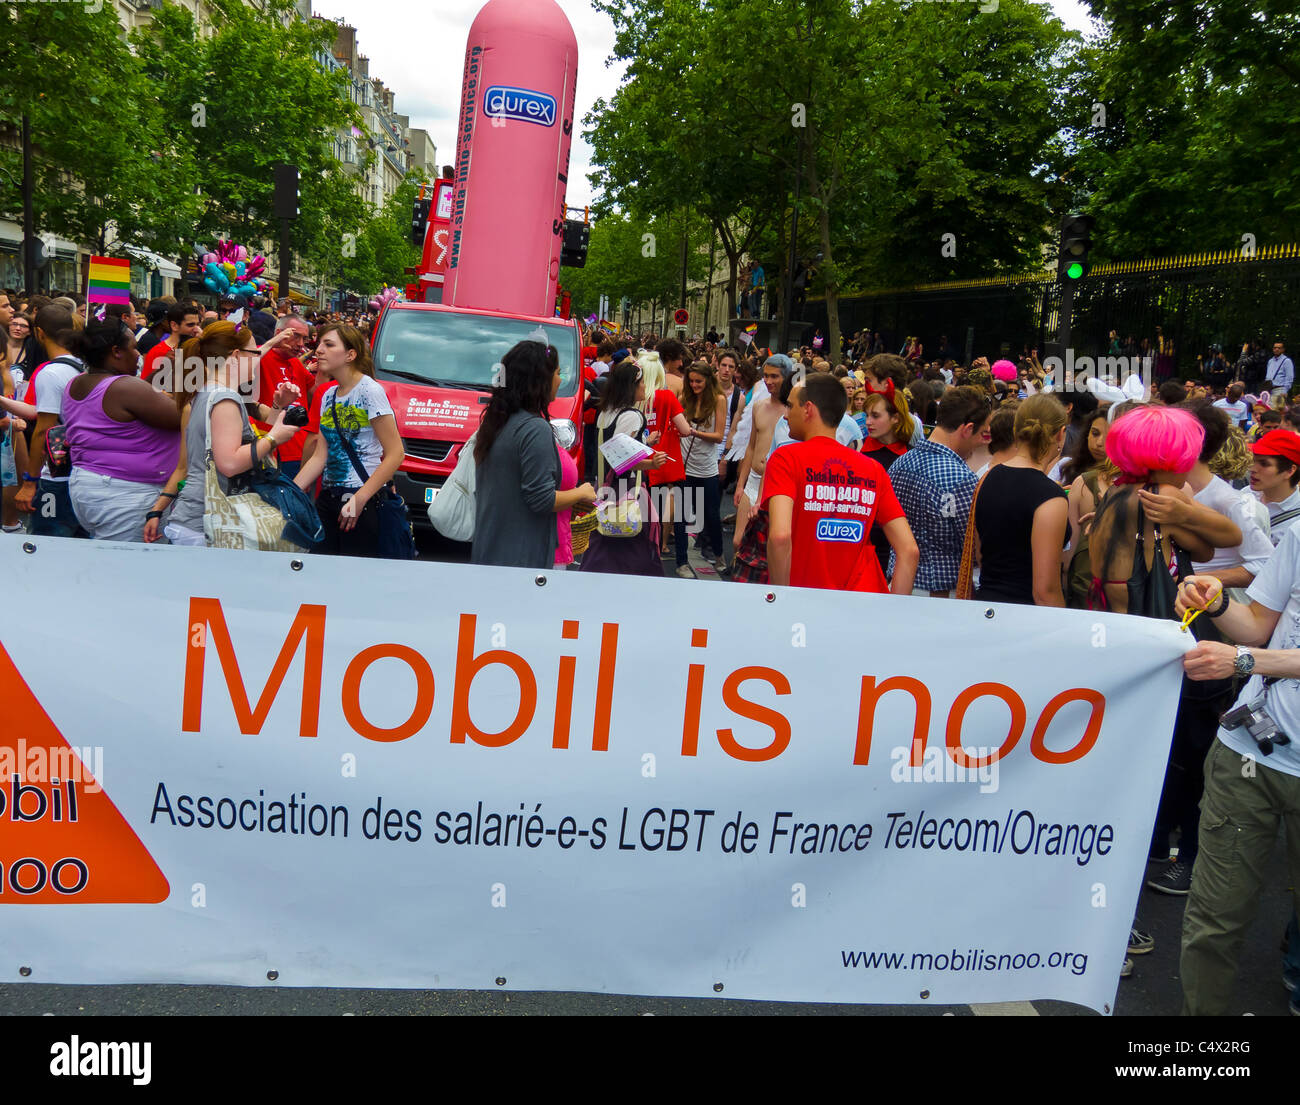 Paris, France, Commercial Sponsors, 'Orange Telecom' Corporation, Banner at the Gay Pride, lgbt march banner - Stock Image